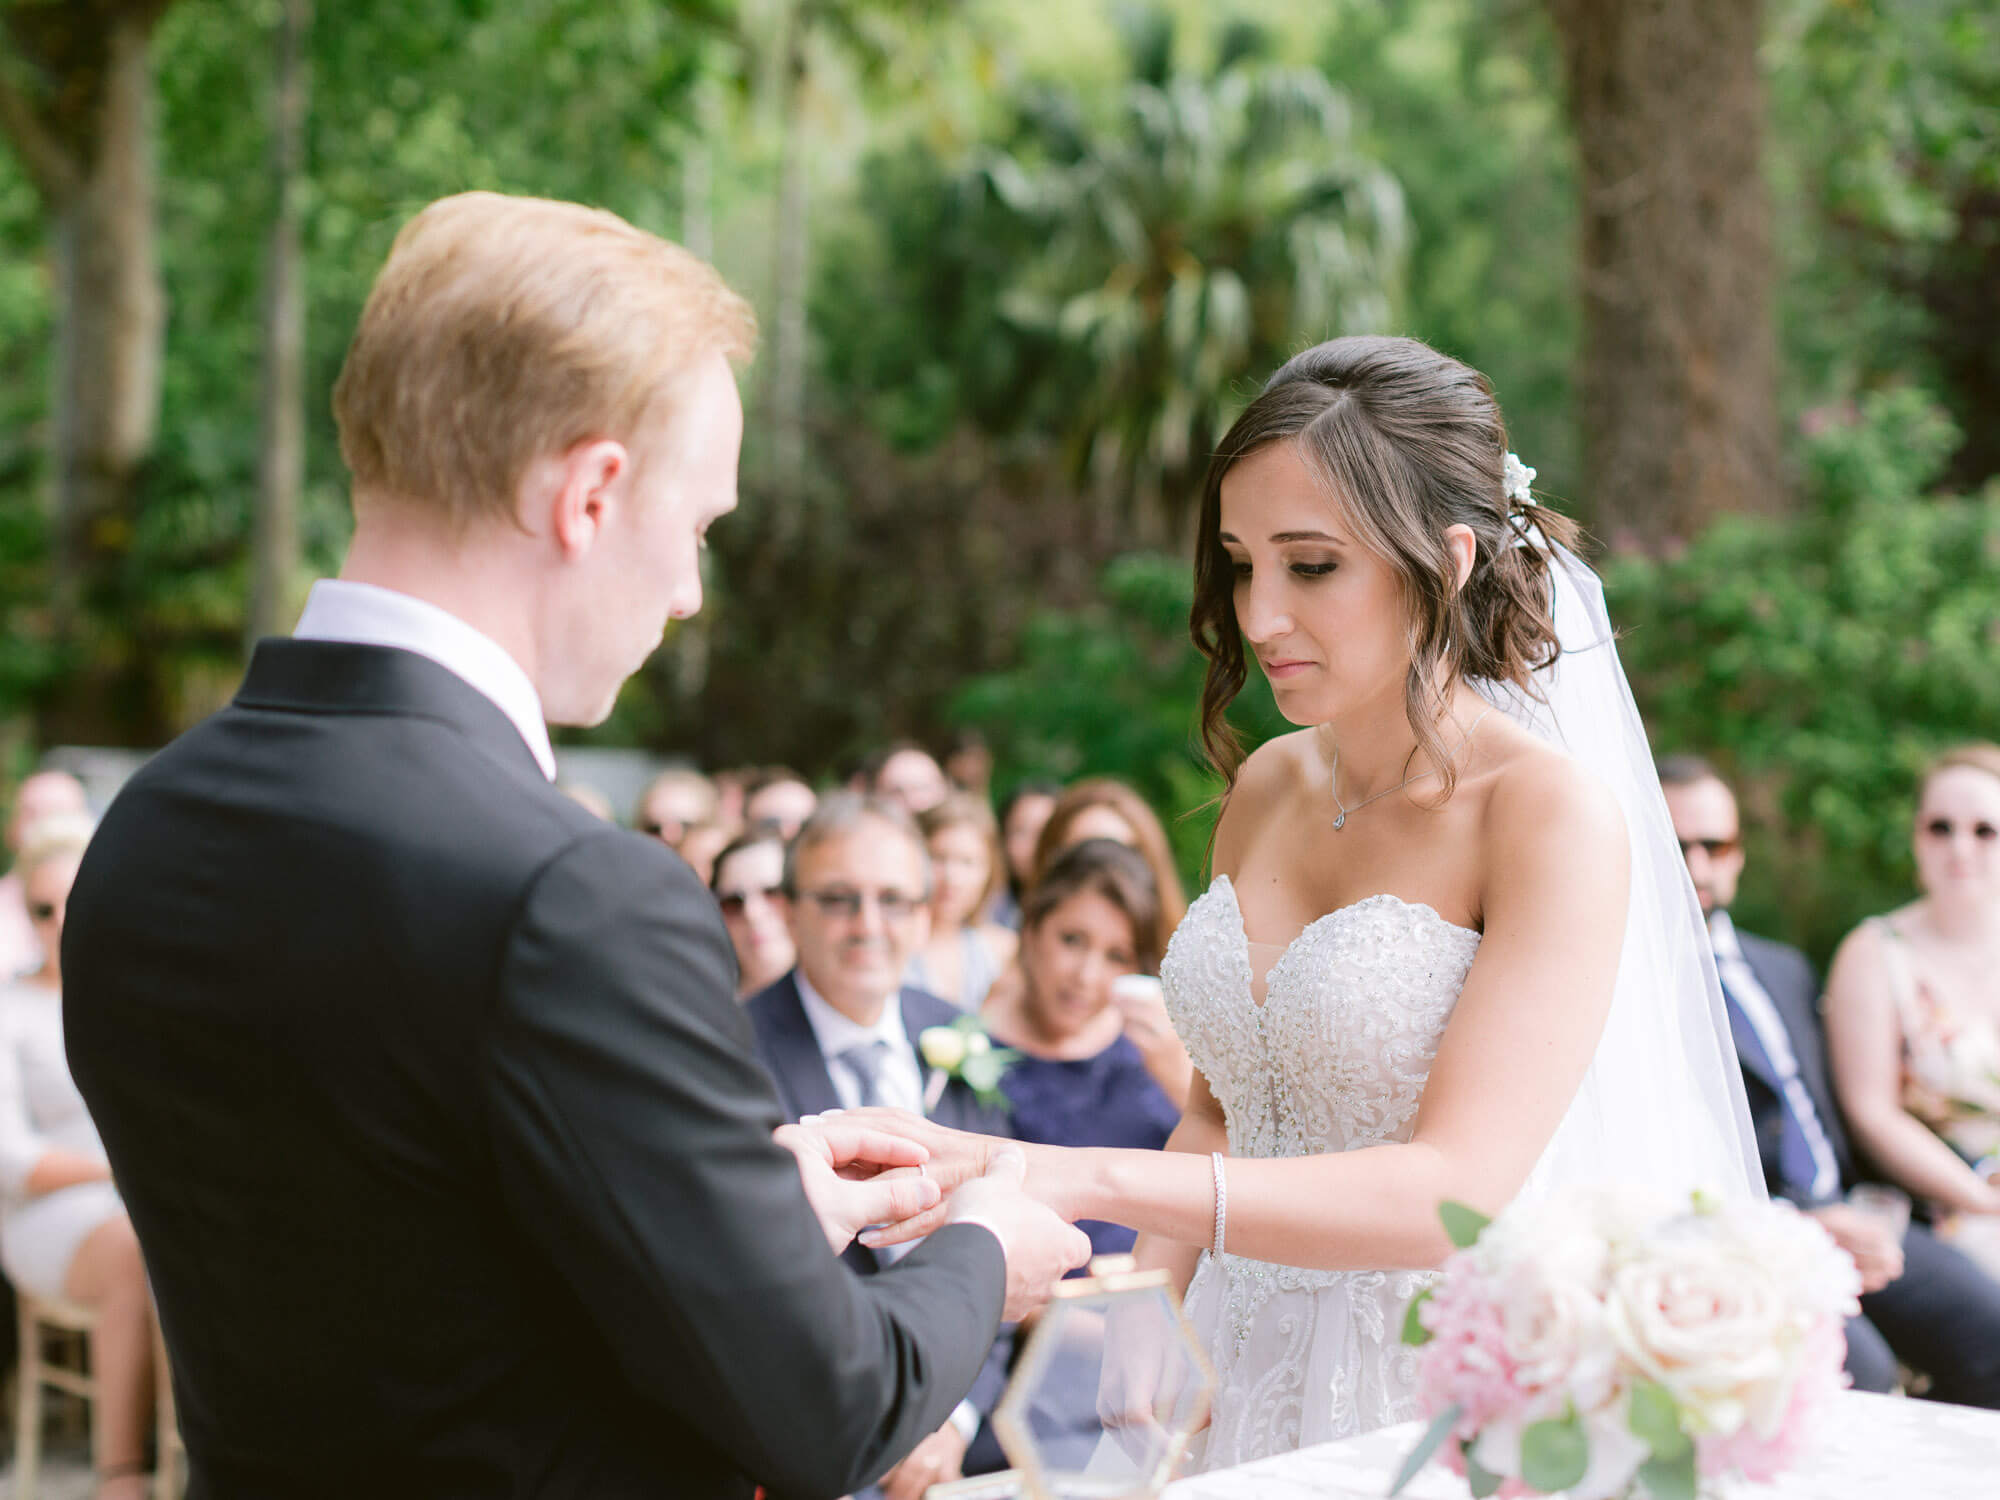 wedding band's exchange moment in Monserrate Palace Sintra by Portugal Wedding Photographer